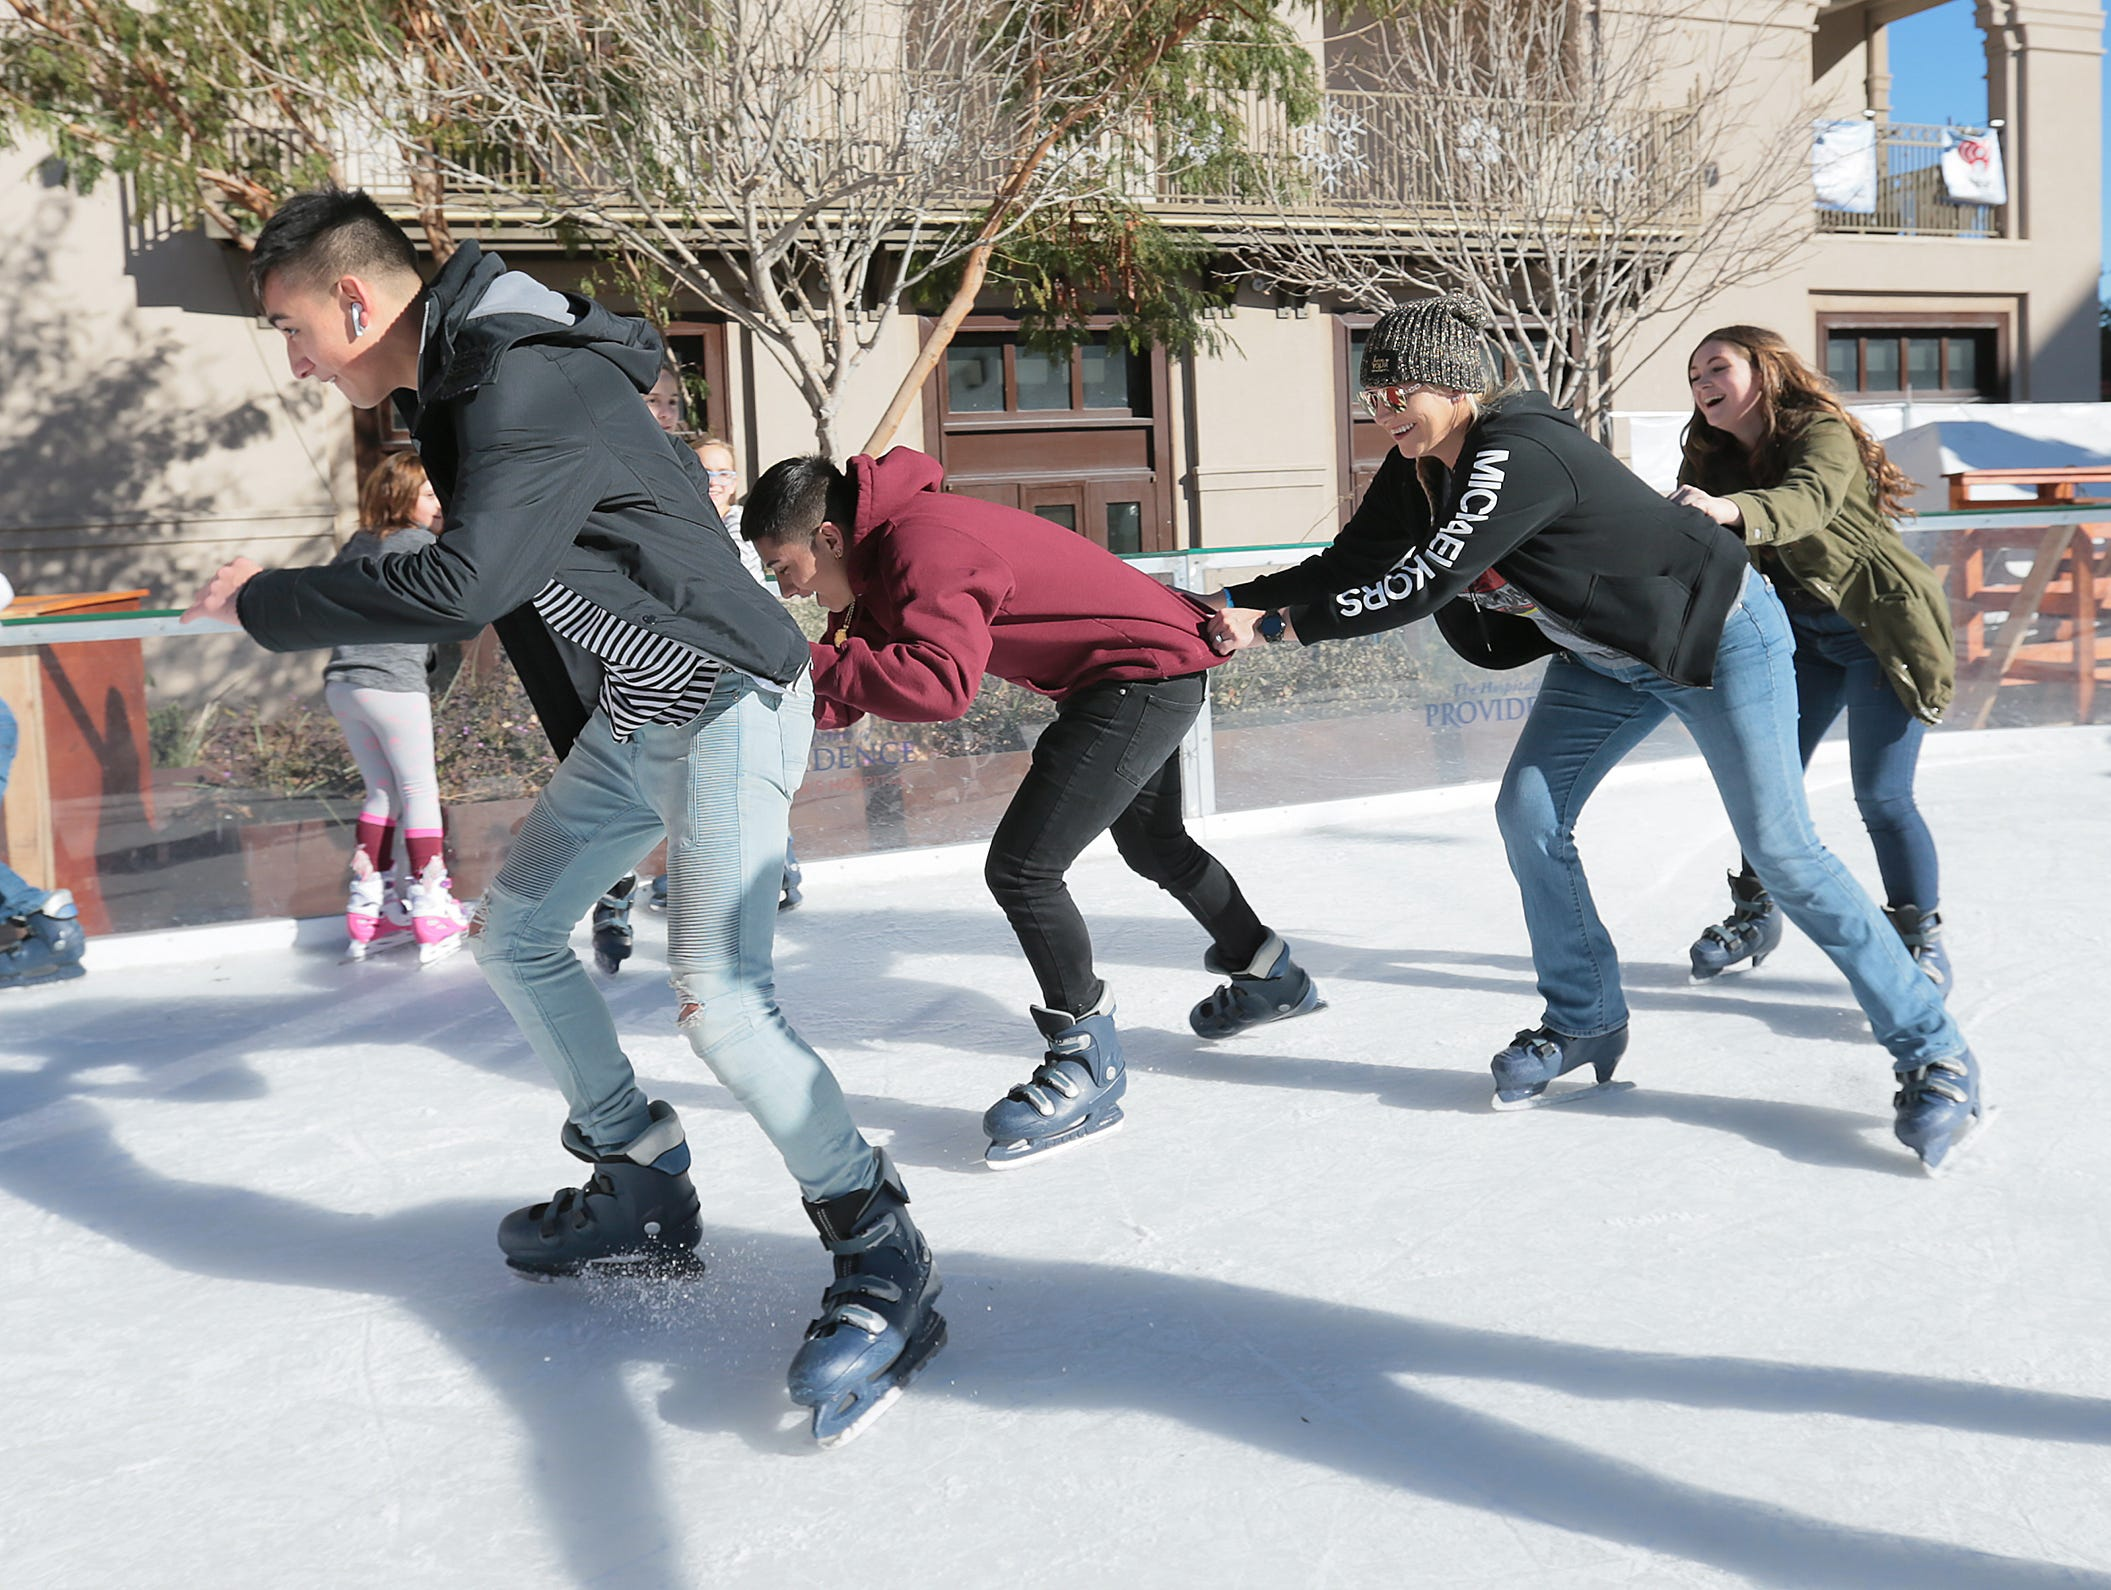 This is the final weekend to enjoy Winterfest in downtown El Paso. The Hospitals of Providence sponsored event features ice skating, holiday shopping and other special events. Winterfest is located at Arts Festival Plaza.